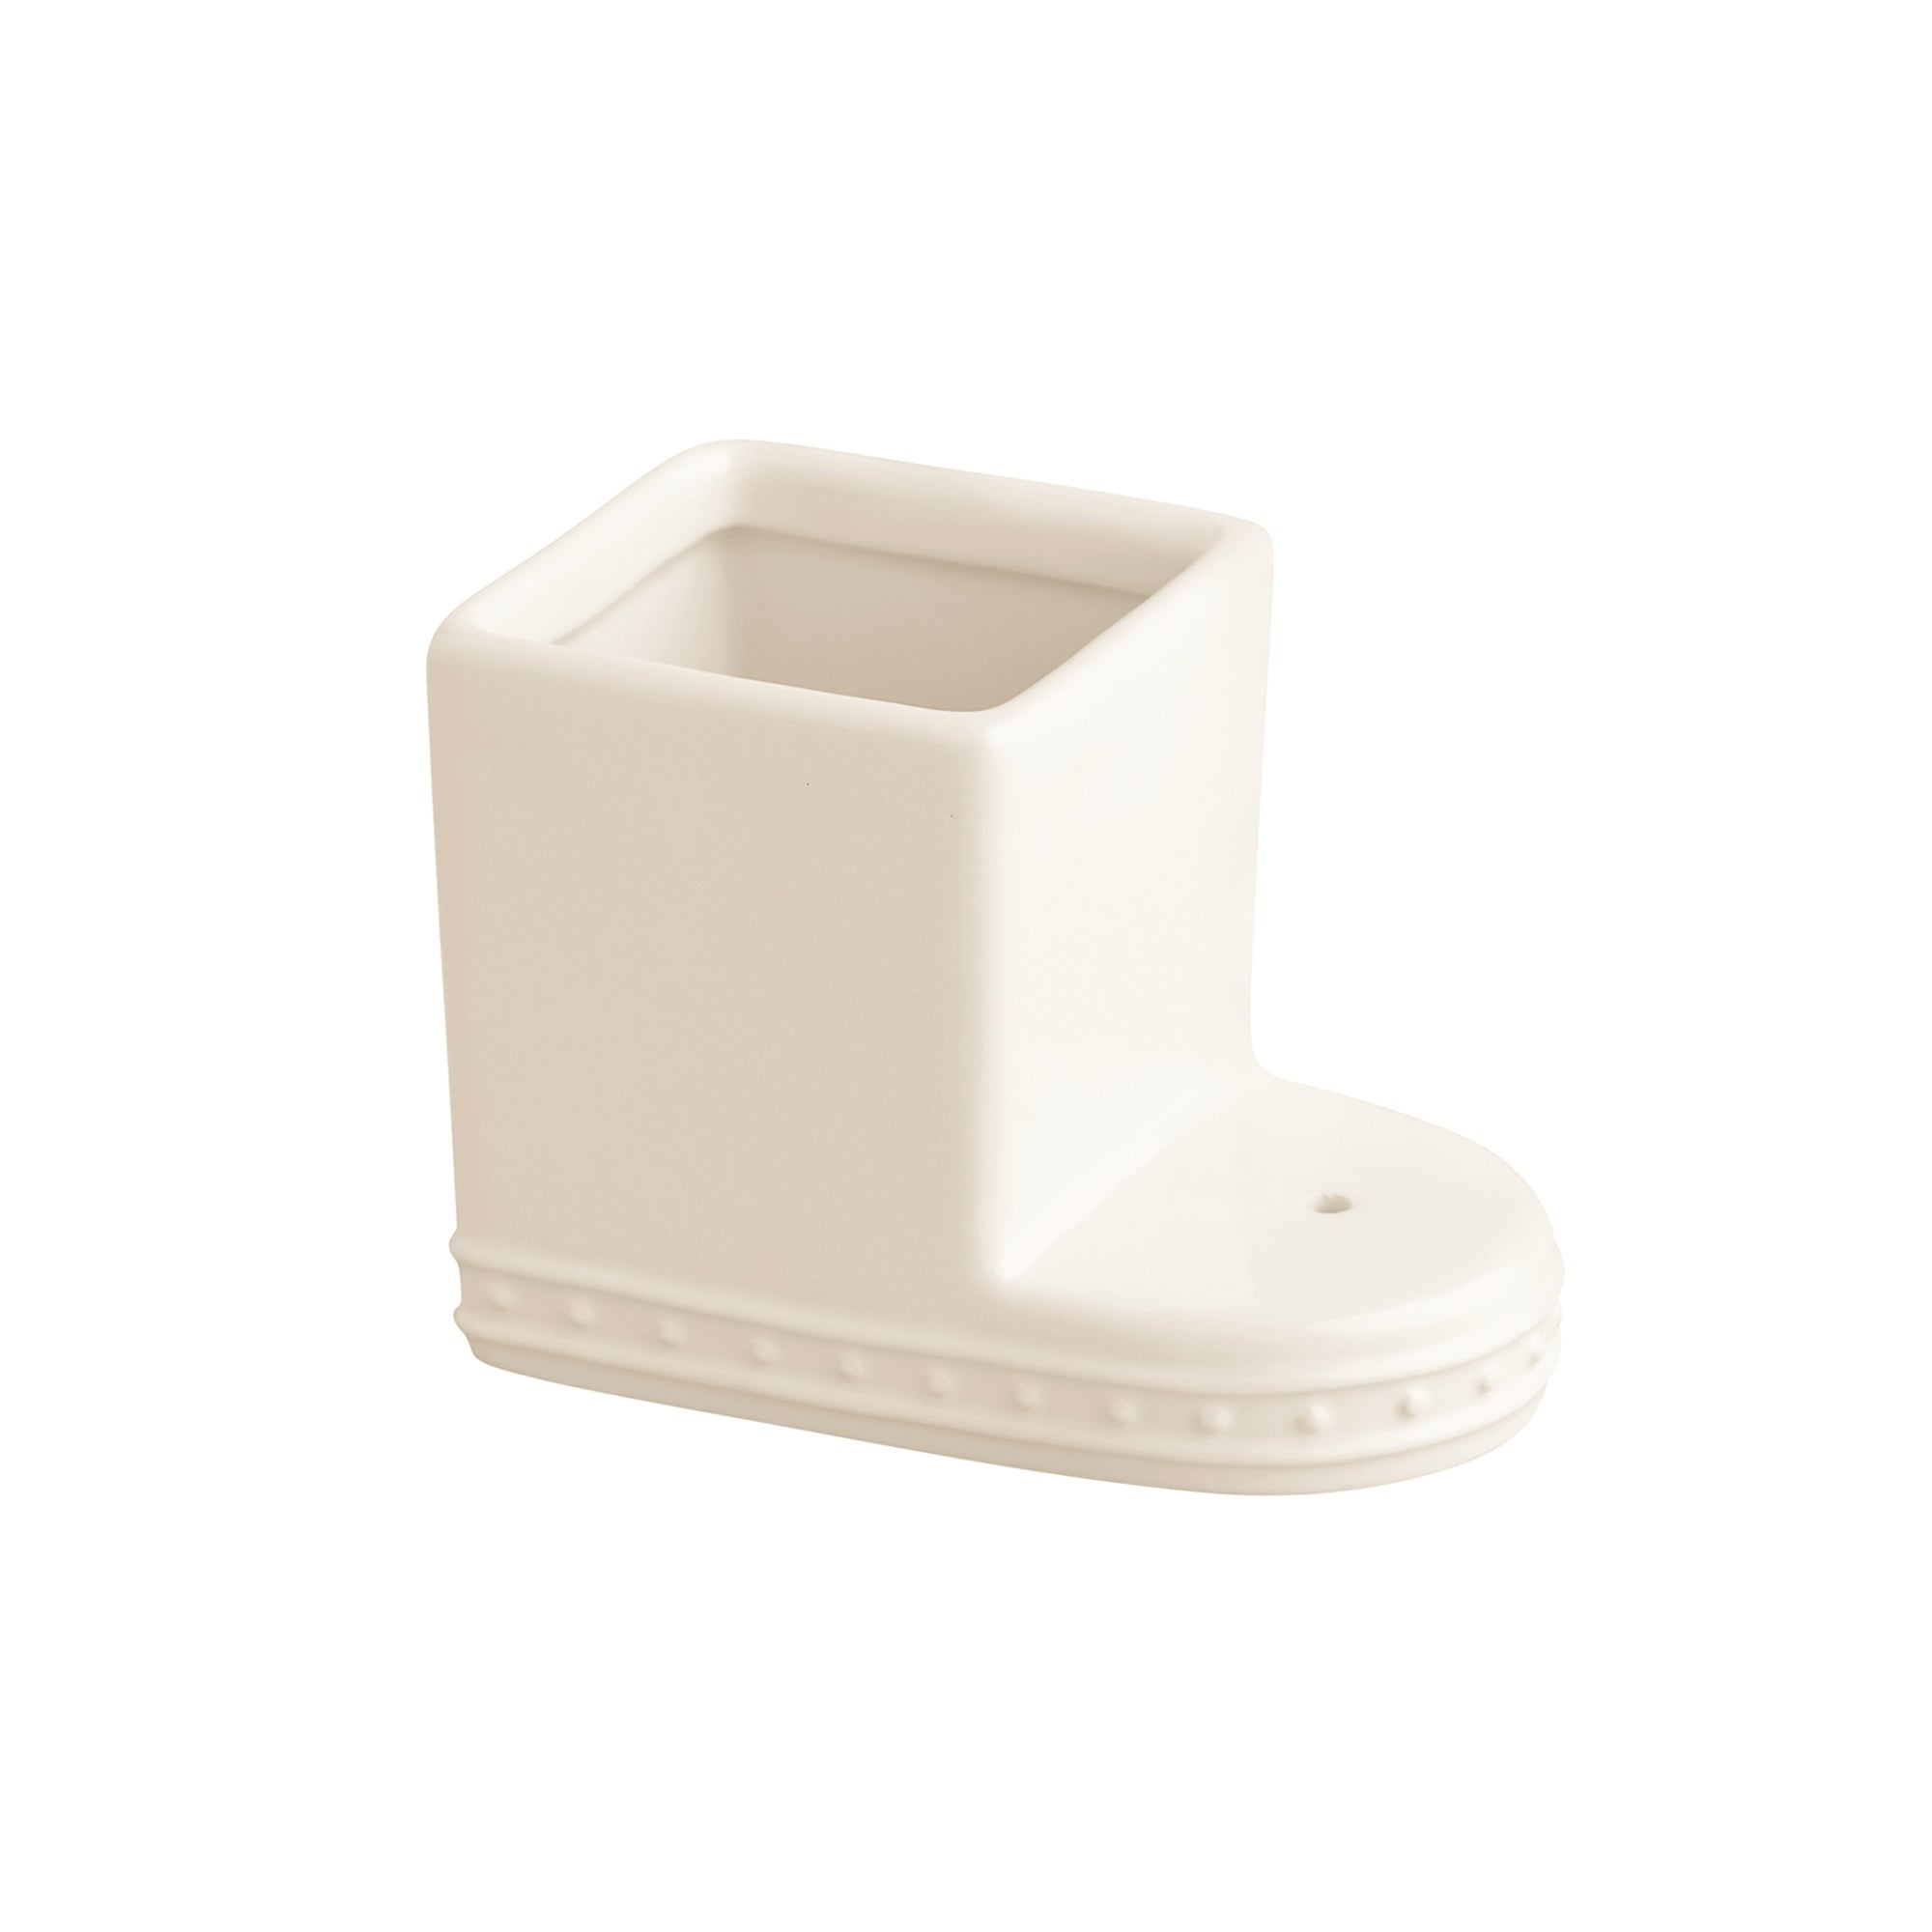 Nora Fleming off white ceramic square container